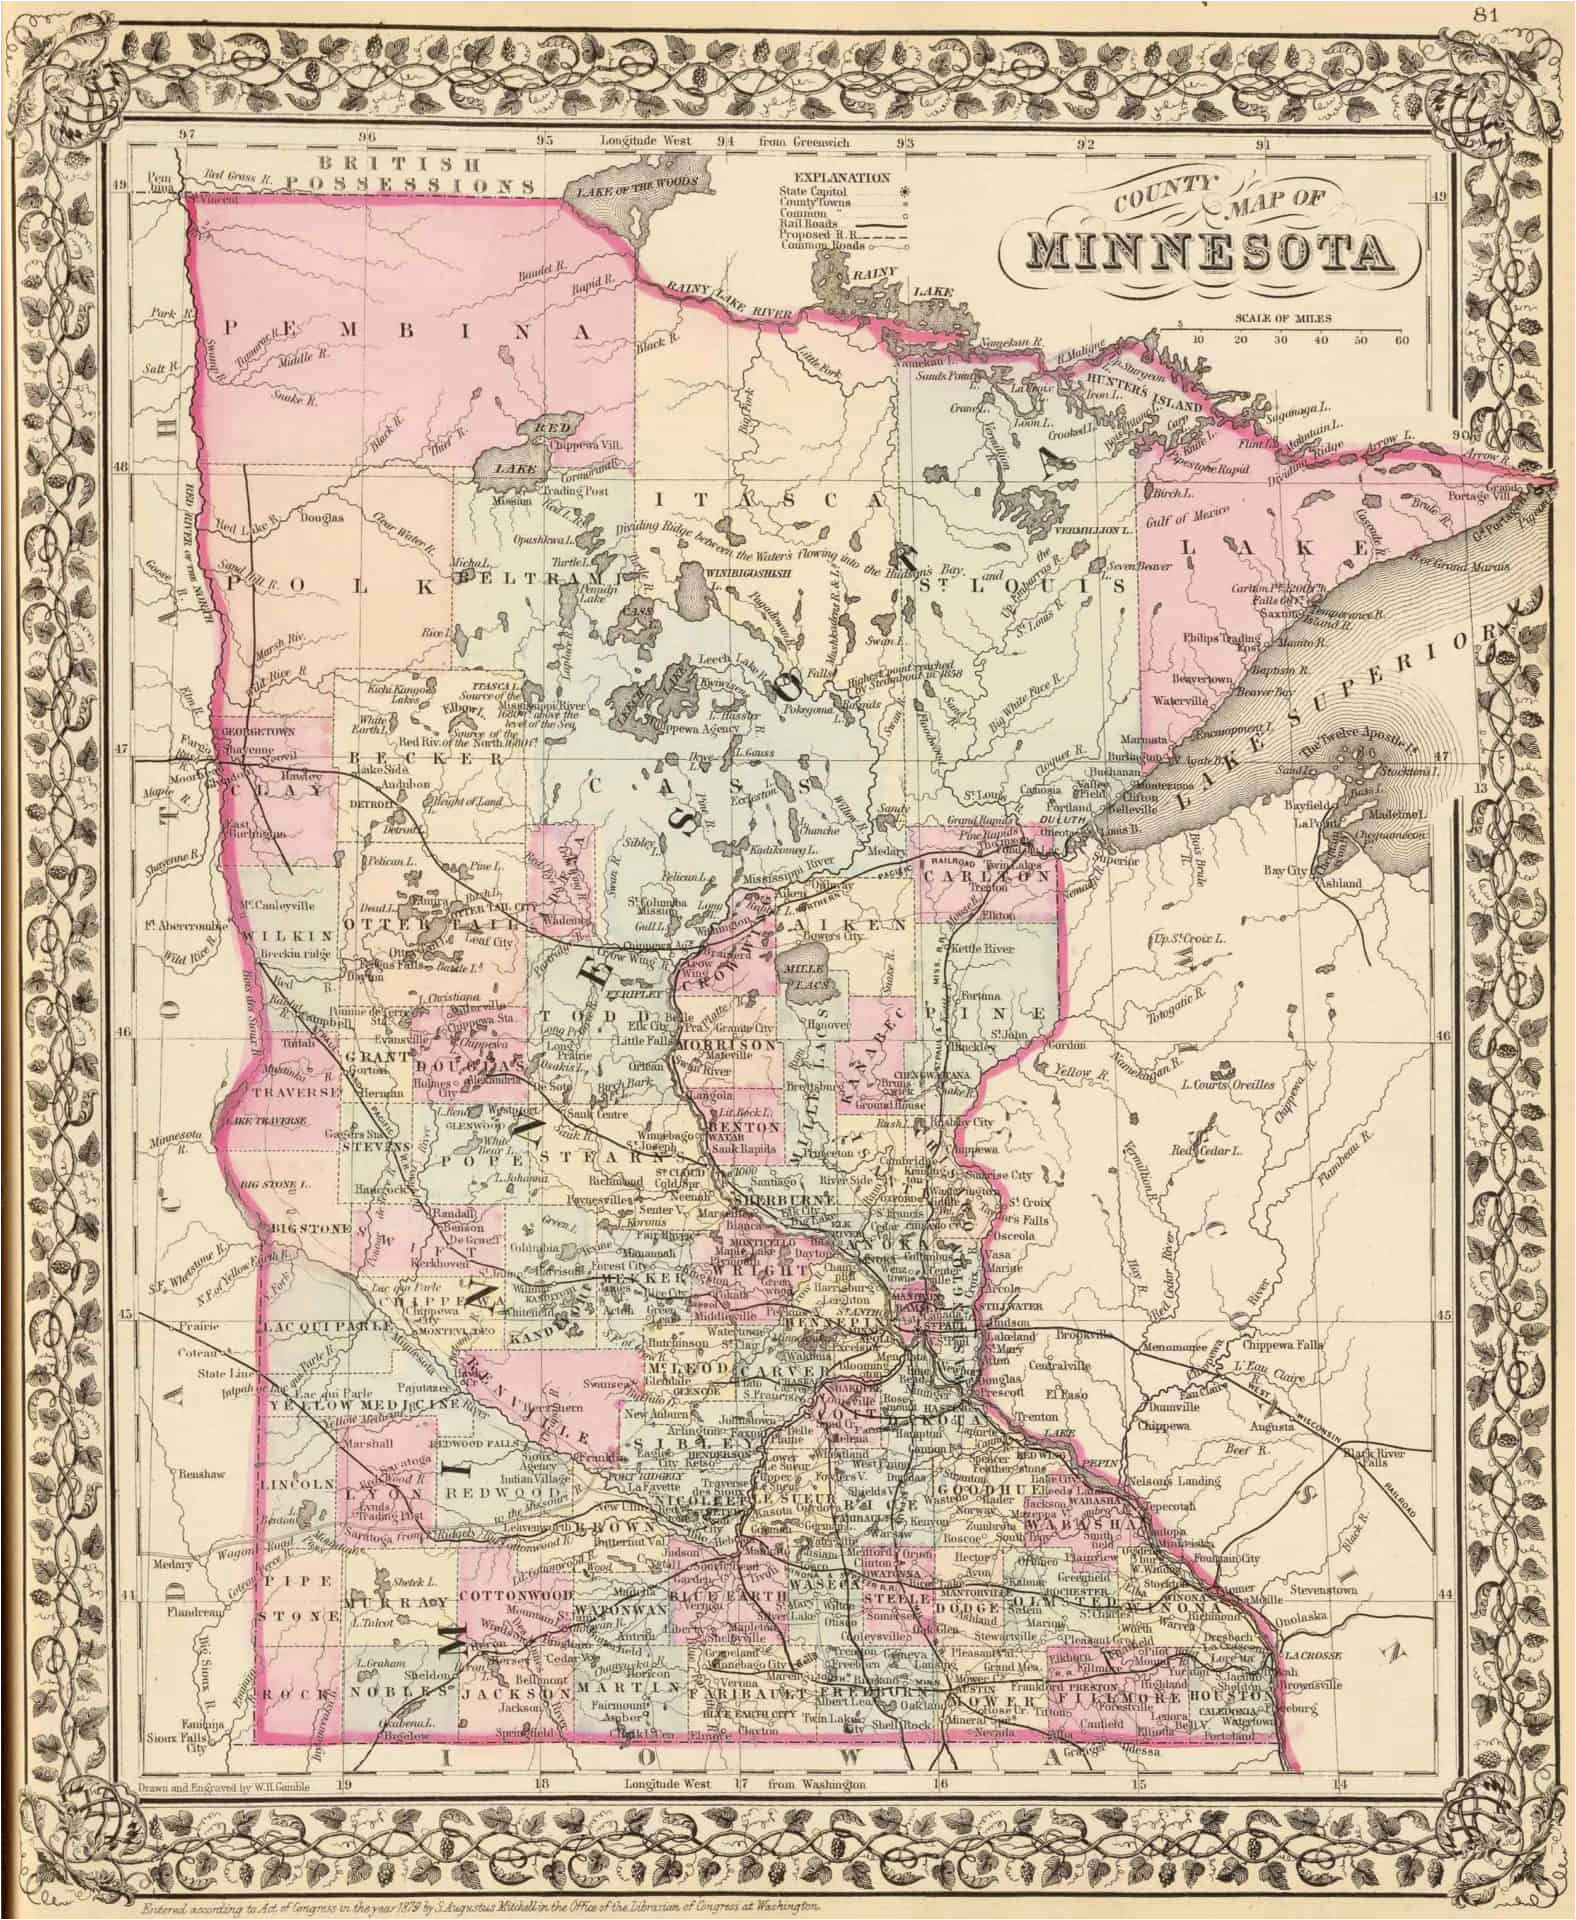 Swift County Minnesota Map Old Historical City County and State Maps Of Minnesota